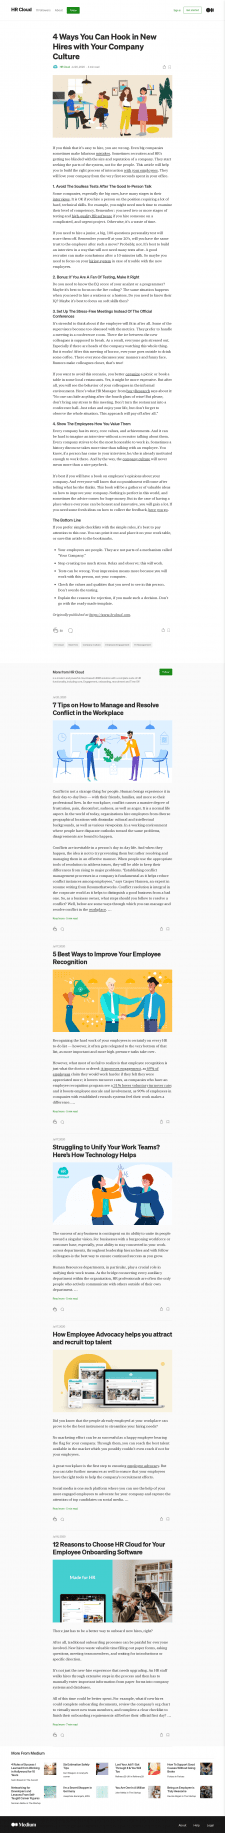 4 Ways You Can Hook in New Hires with Your Company